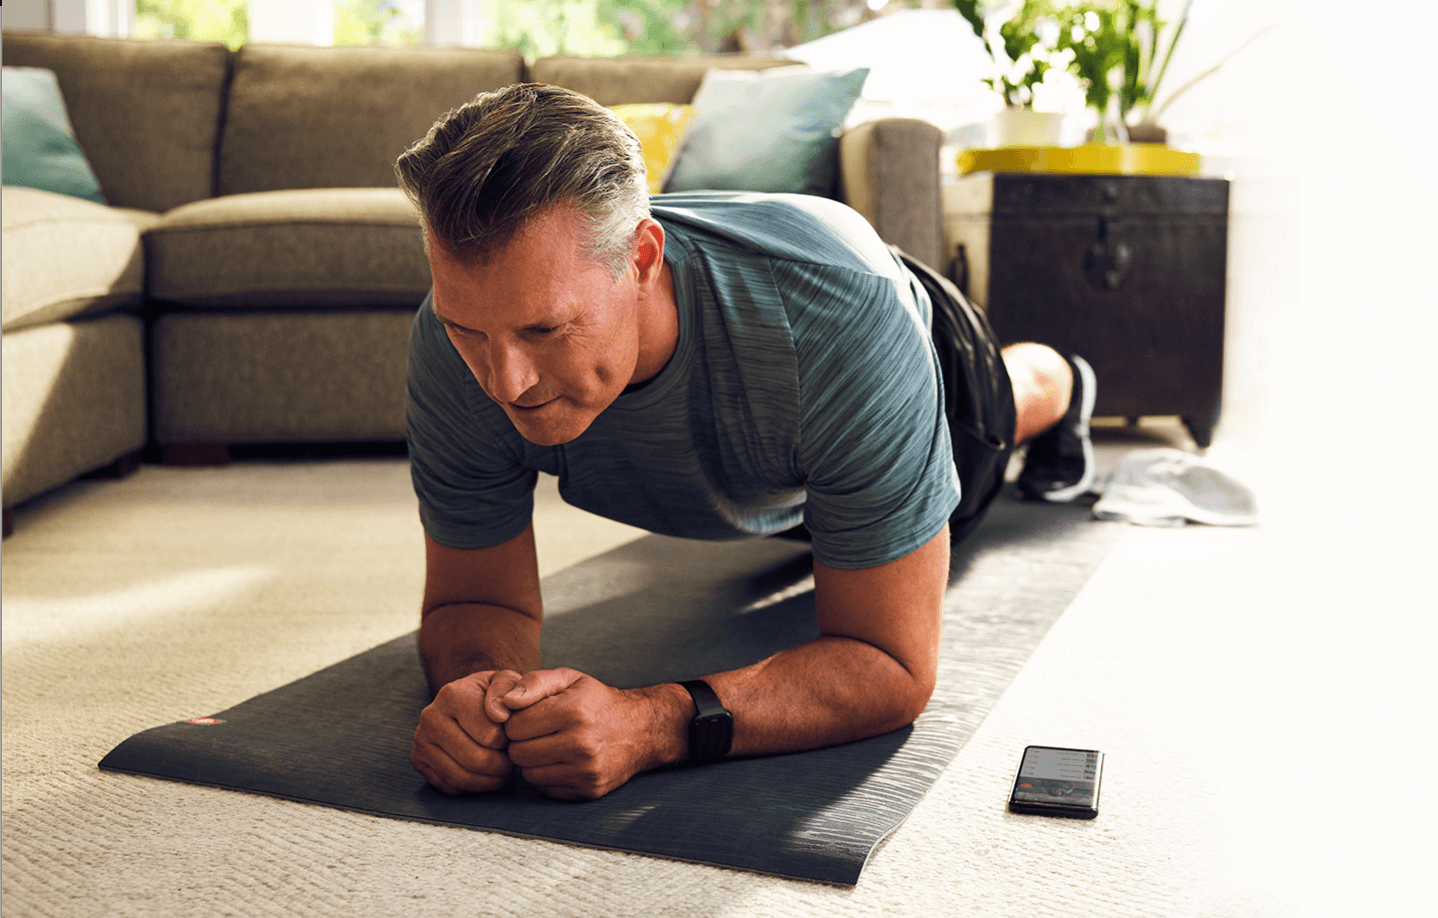 image of a man doing a planking exercise in his home